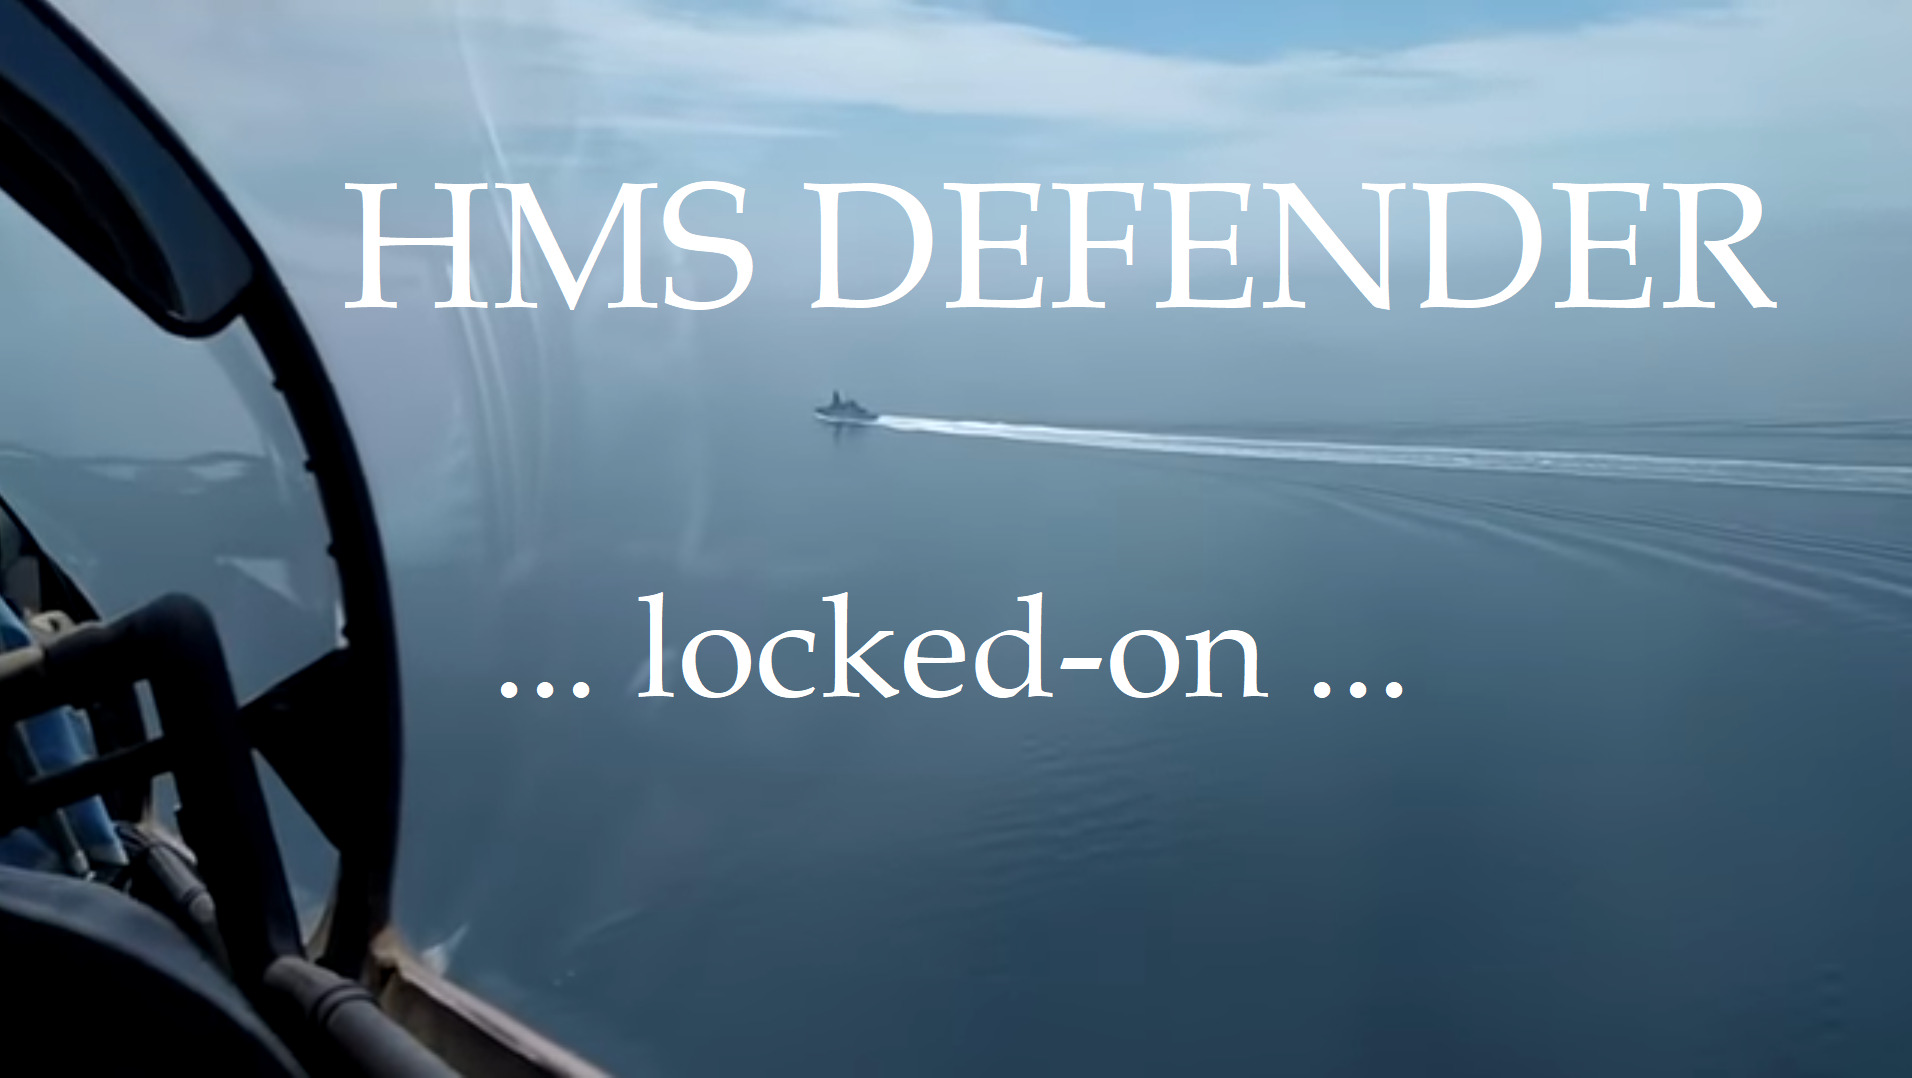 HMS Defender: Coming With Canons Loaded, Fleeing With Latrines Filled